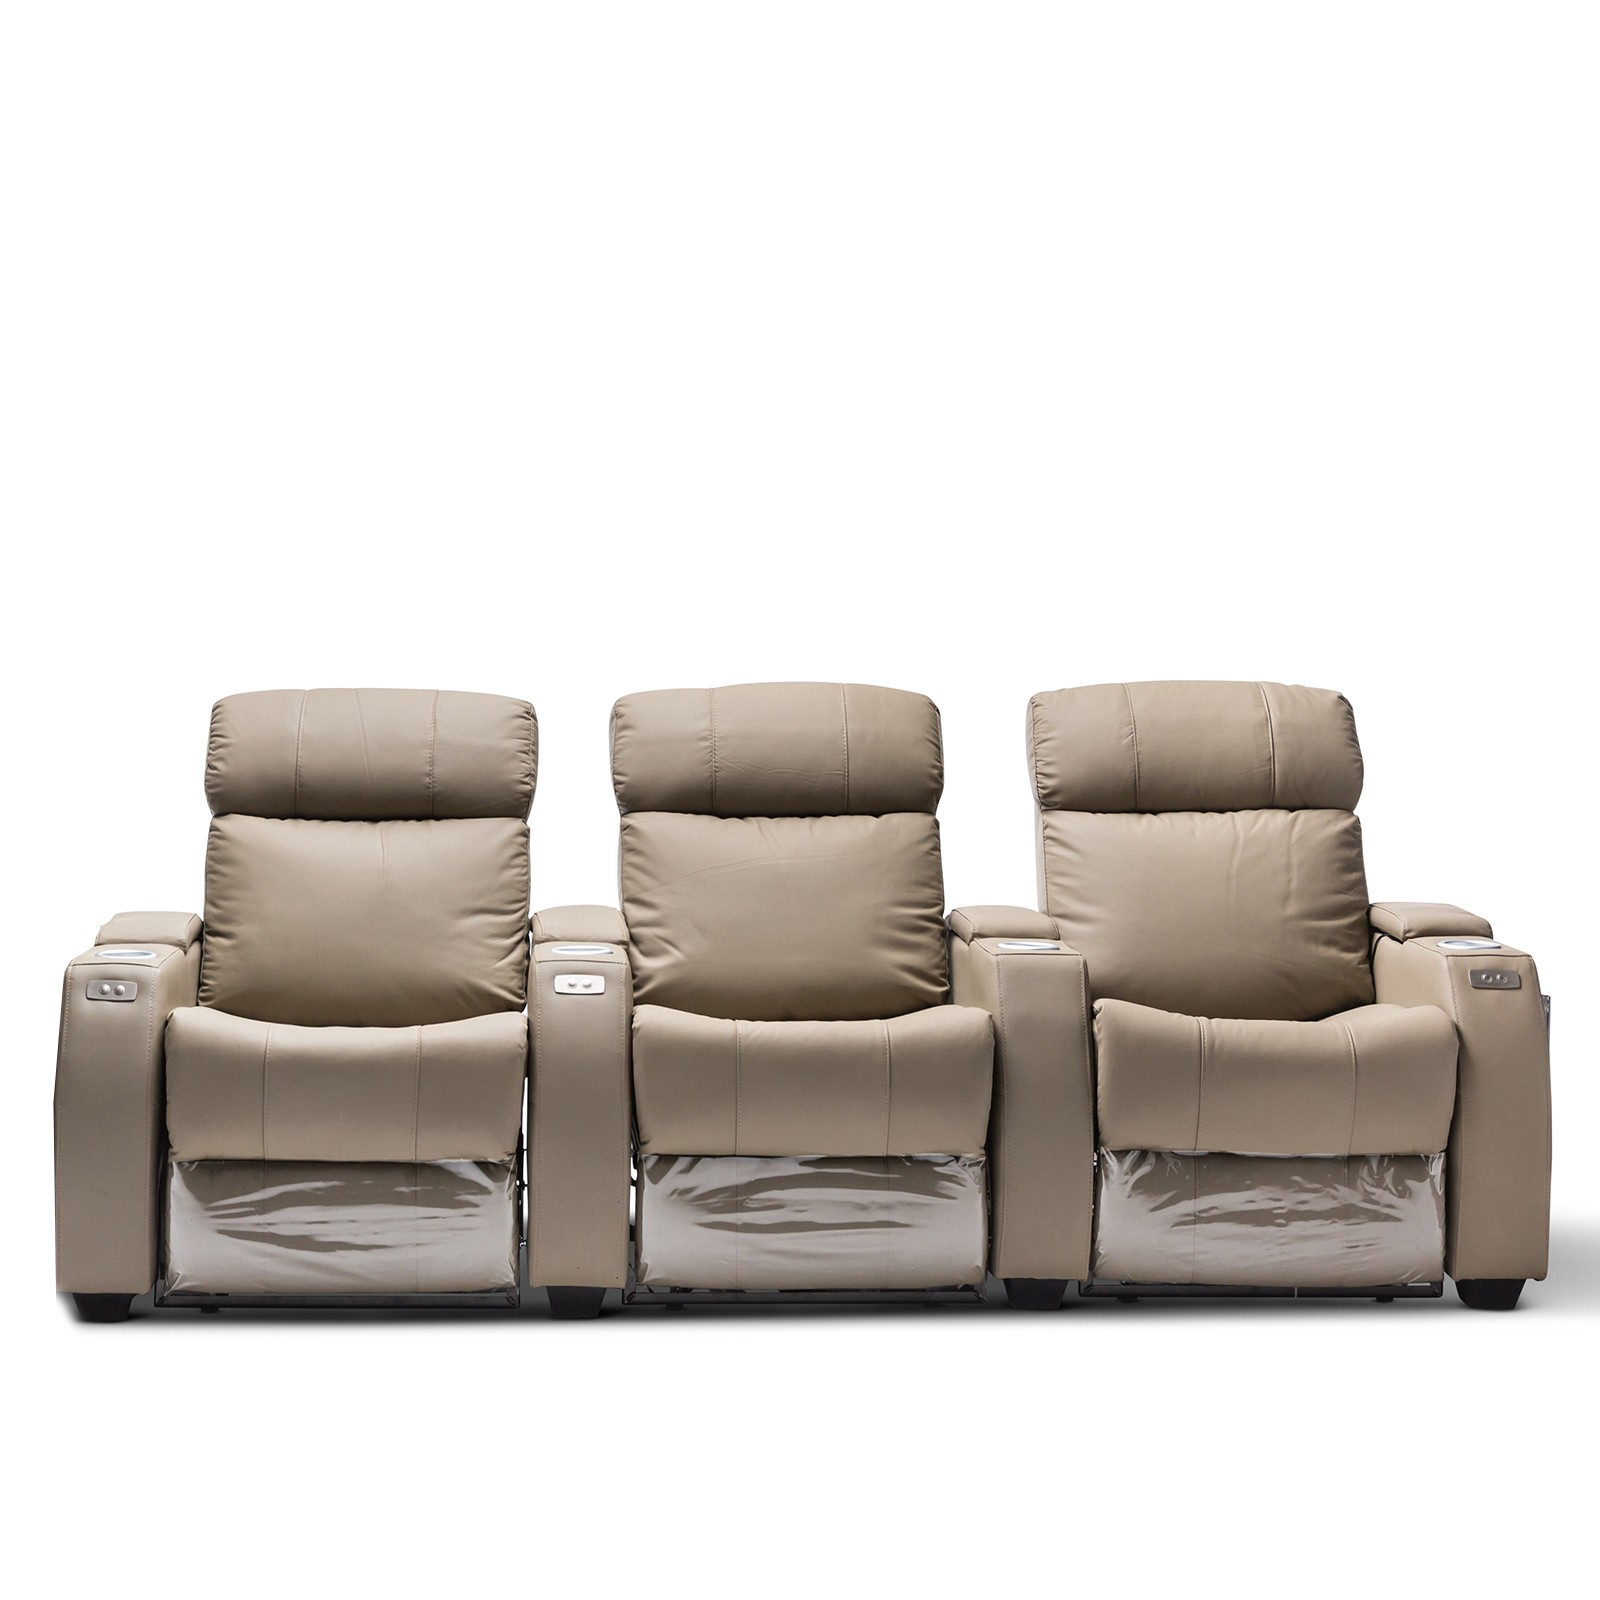 2 Seater Recliner Lounge Anna Grey Leather Electric Recliner Home Theatre Lounge